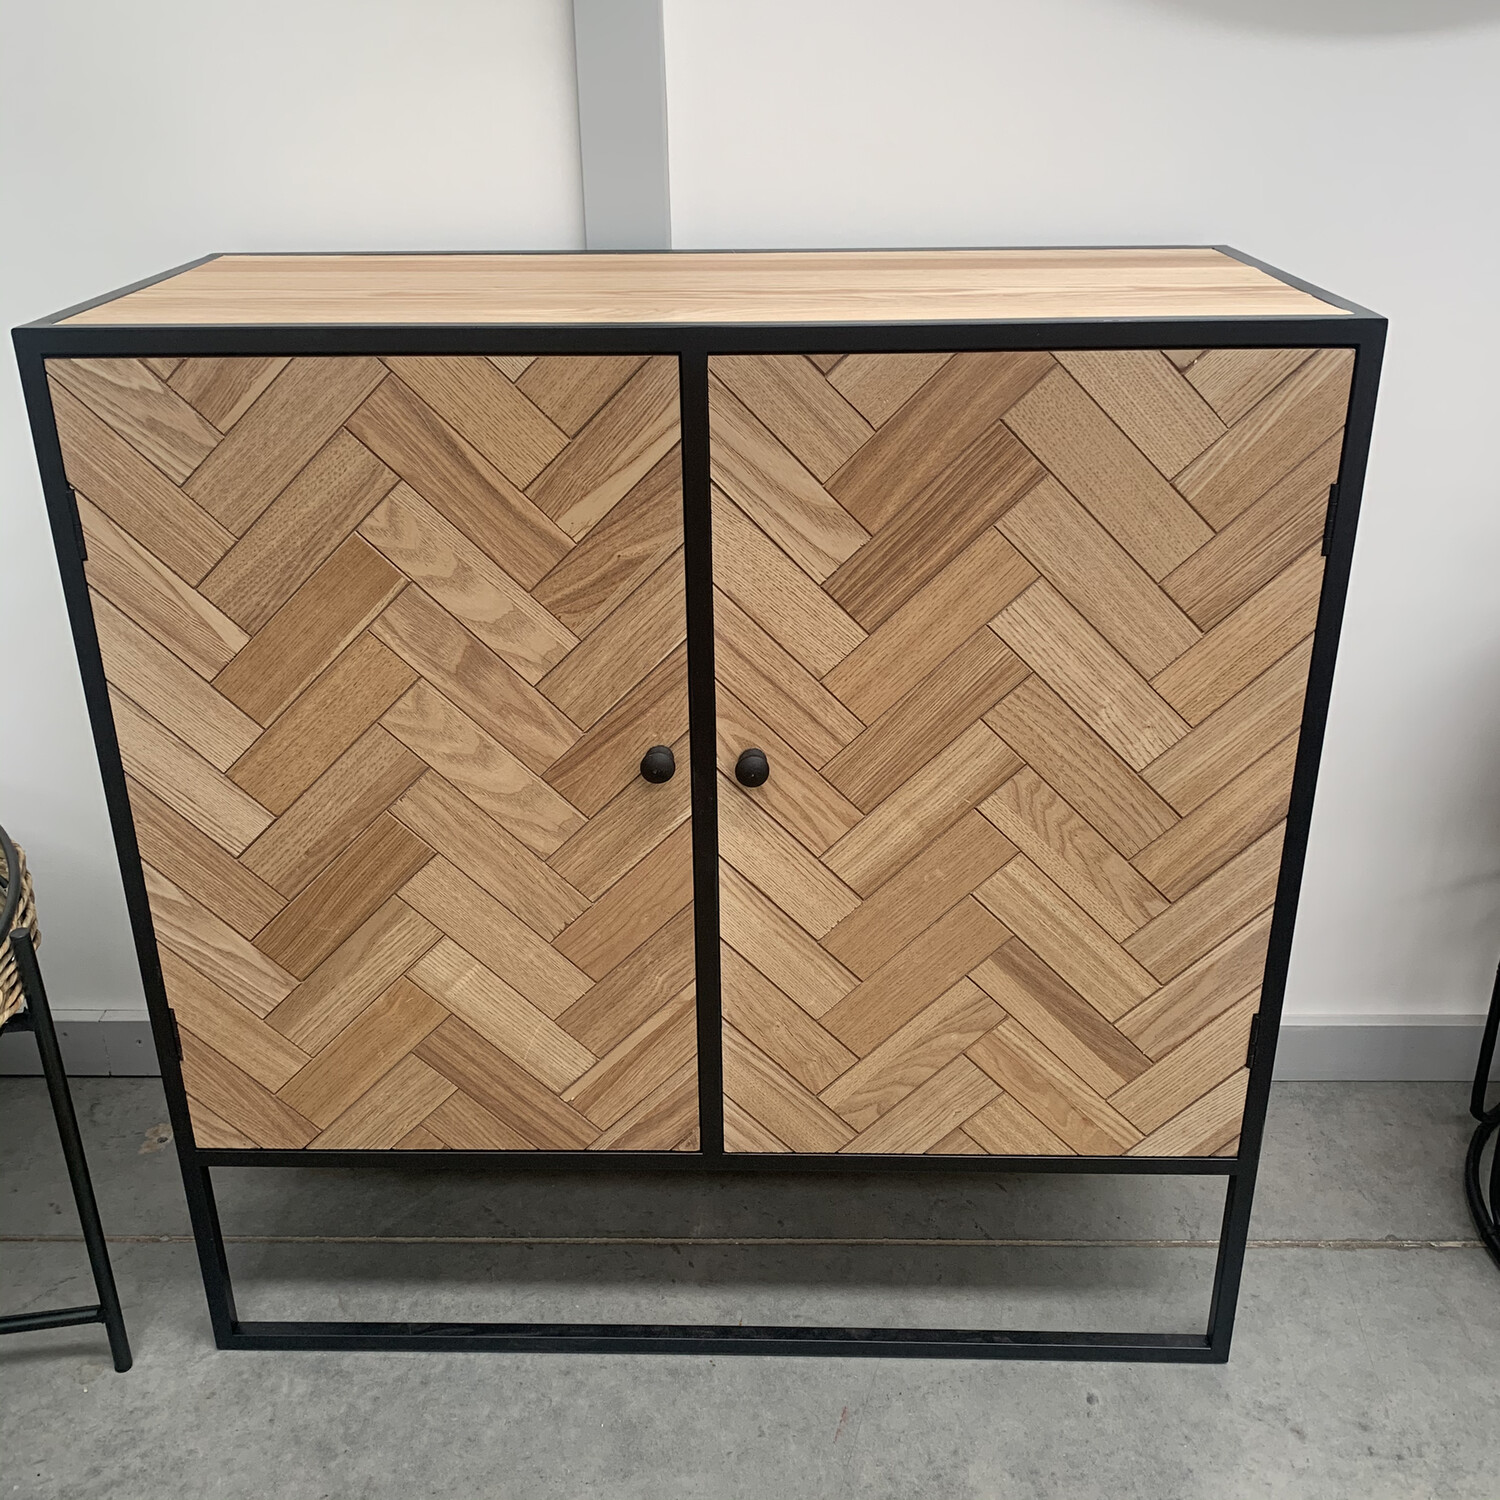 PARQUETRY STYLE CABINET